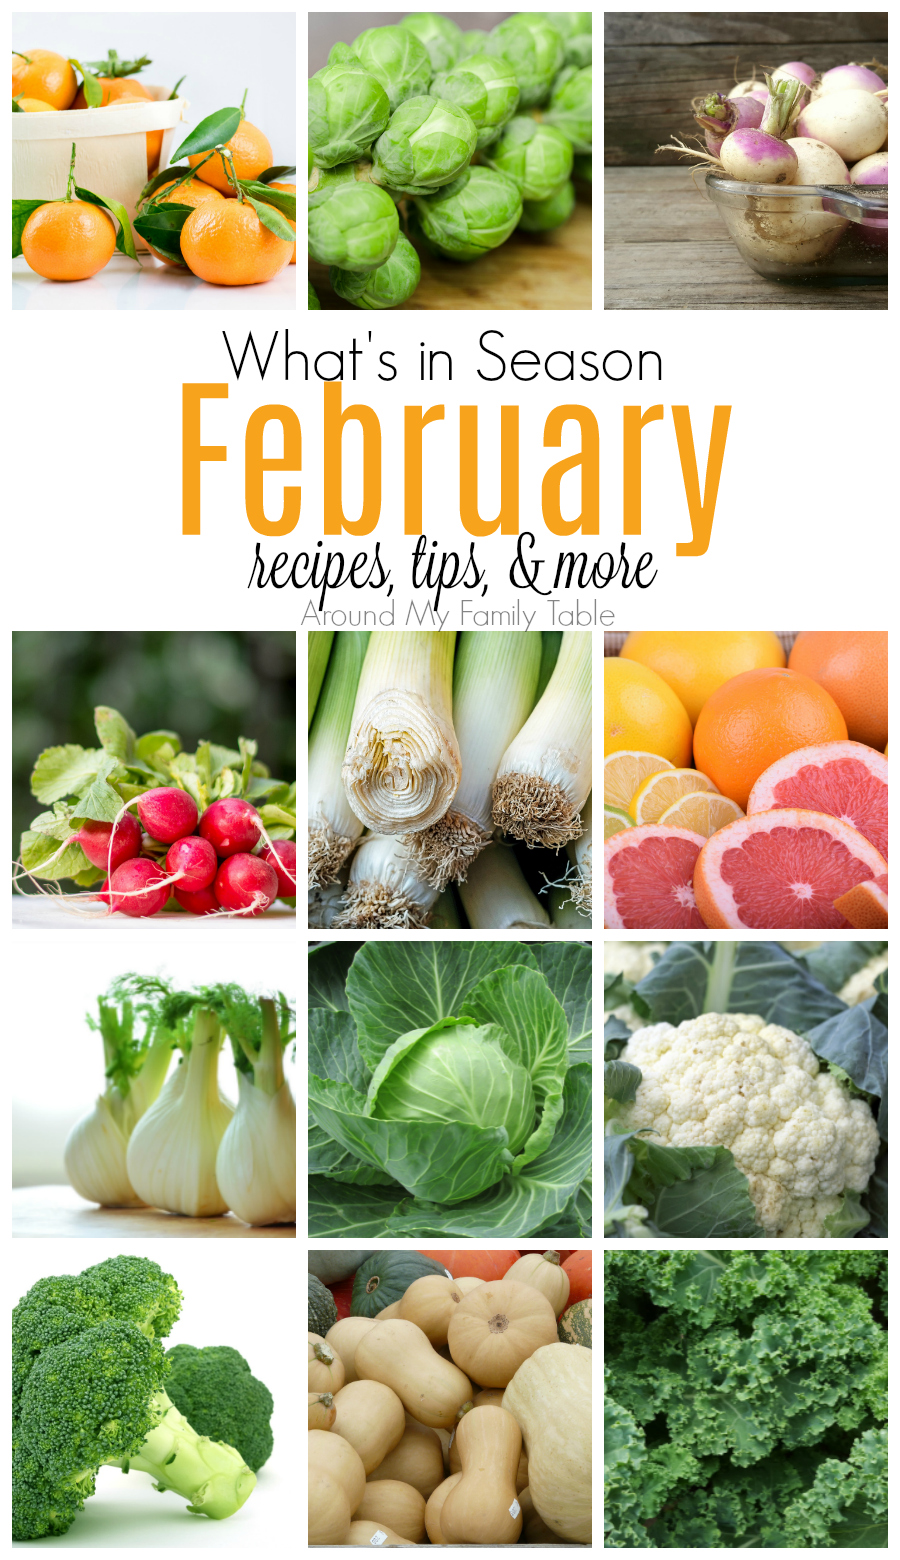 This February -- What's In Season Guide is full of tips and recipes to inspire you to shop and eat seasonally. #seaonalproduce #whatsinseason #february